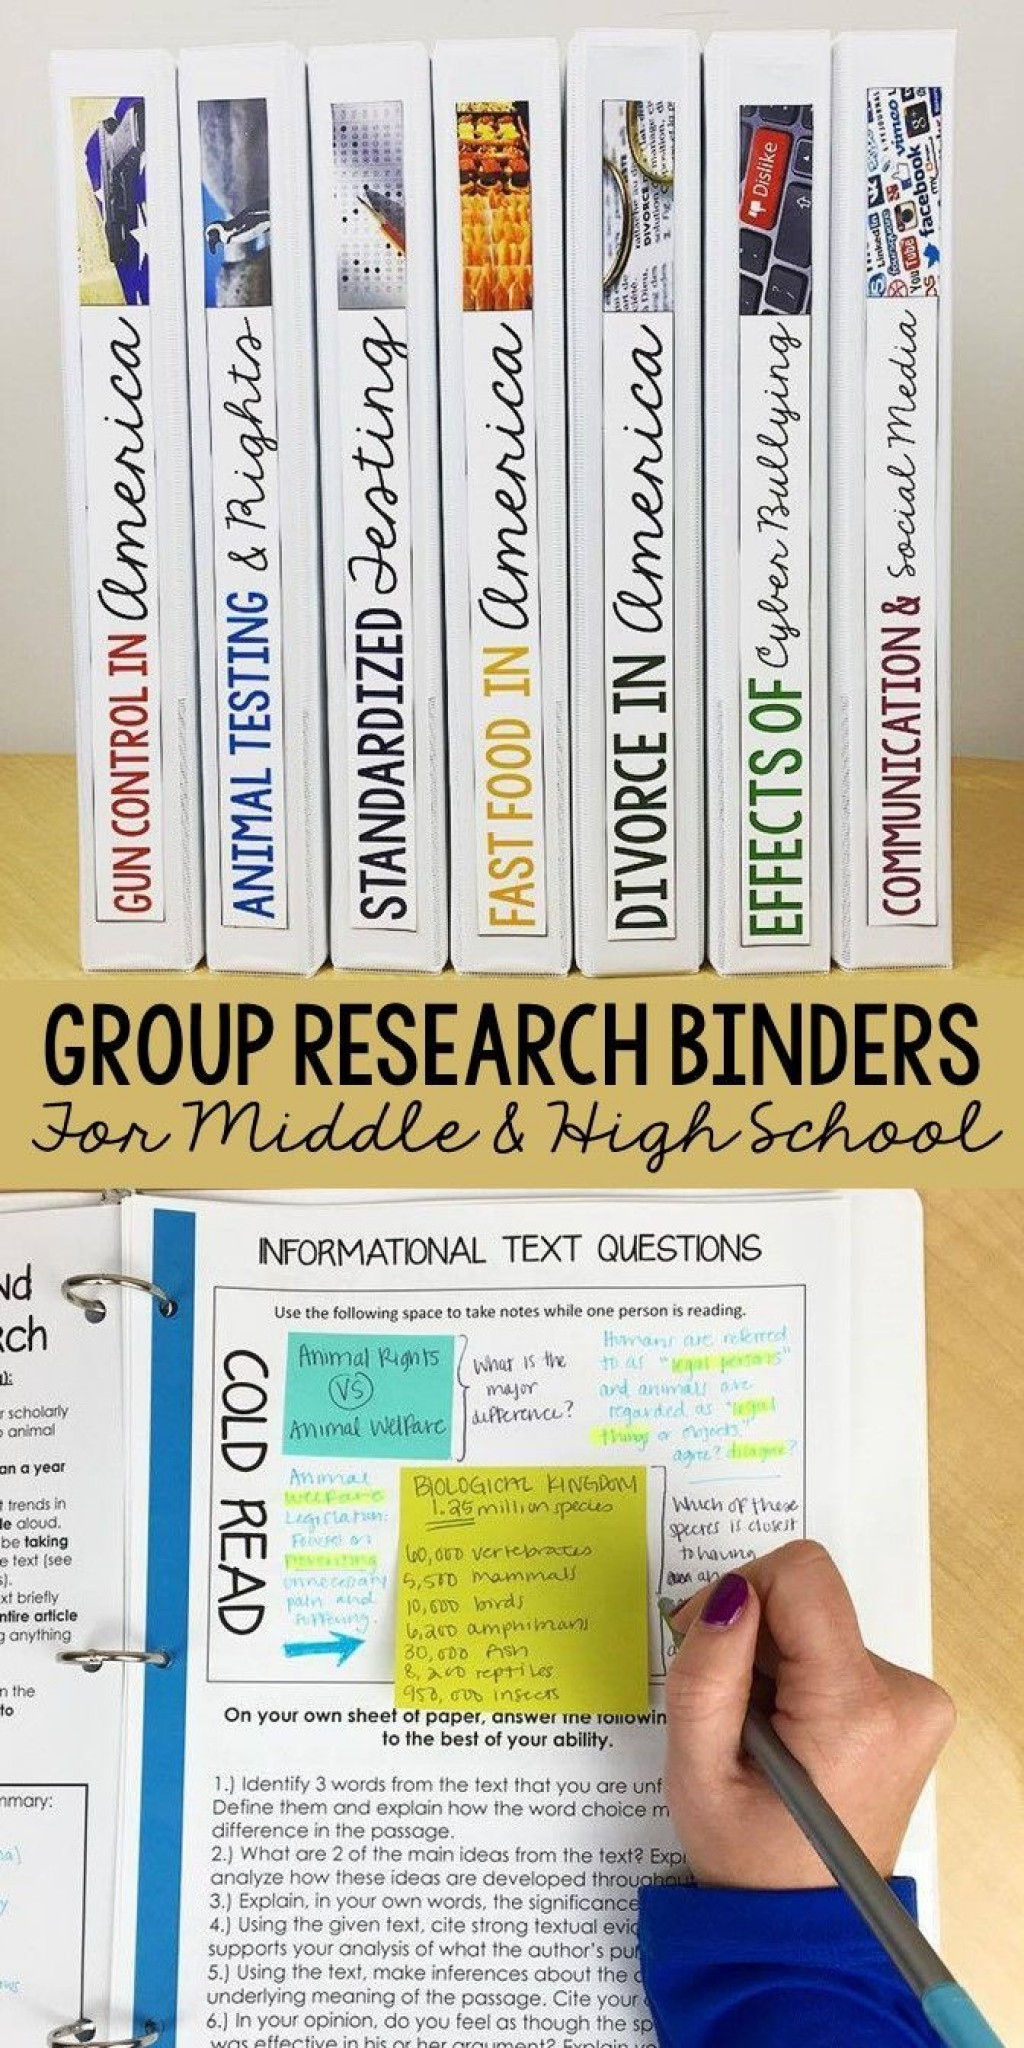 024 Research Paper Writing Binder Teaching Middle School Unusual Ideas Topics Topic Large